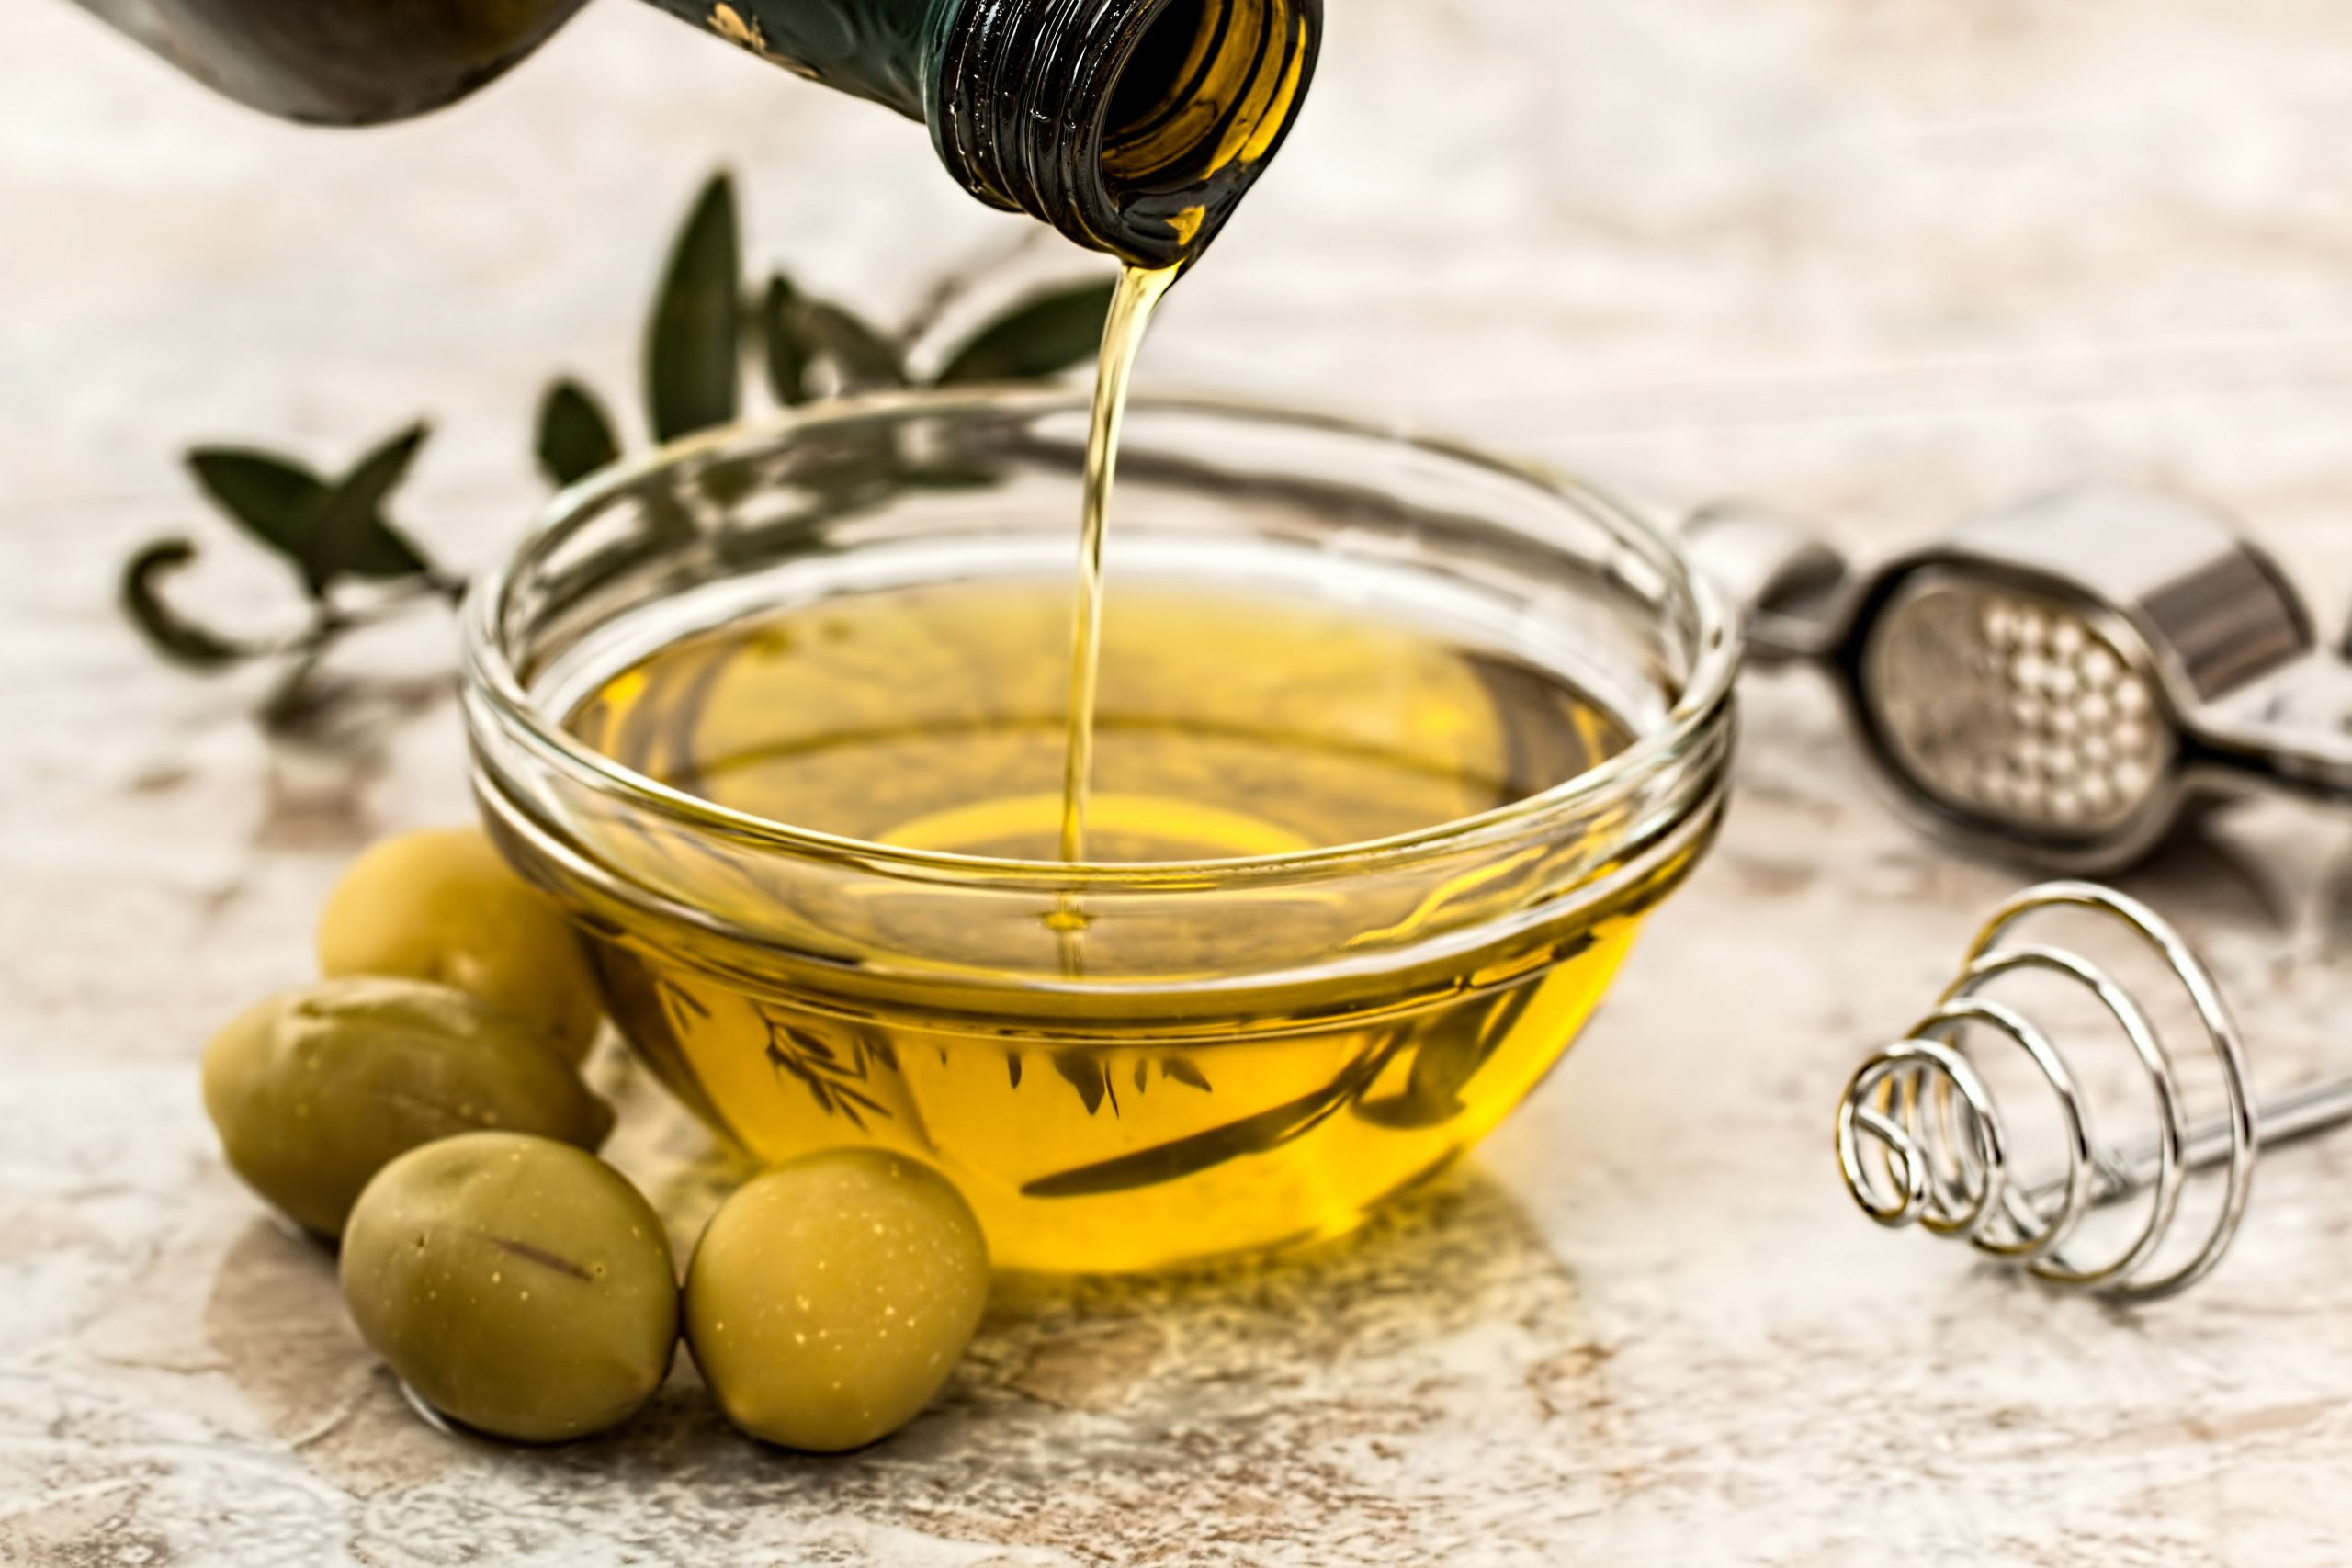 Canva - Olive Oil in a Bowl